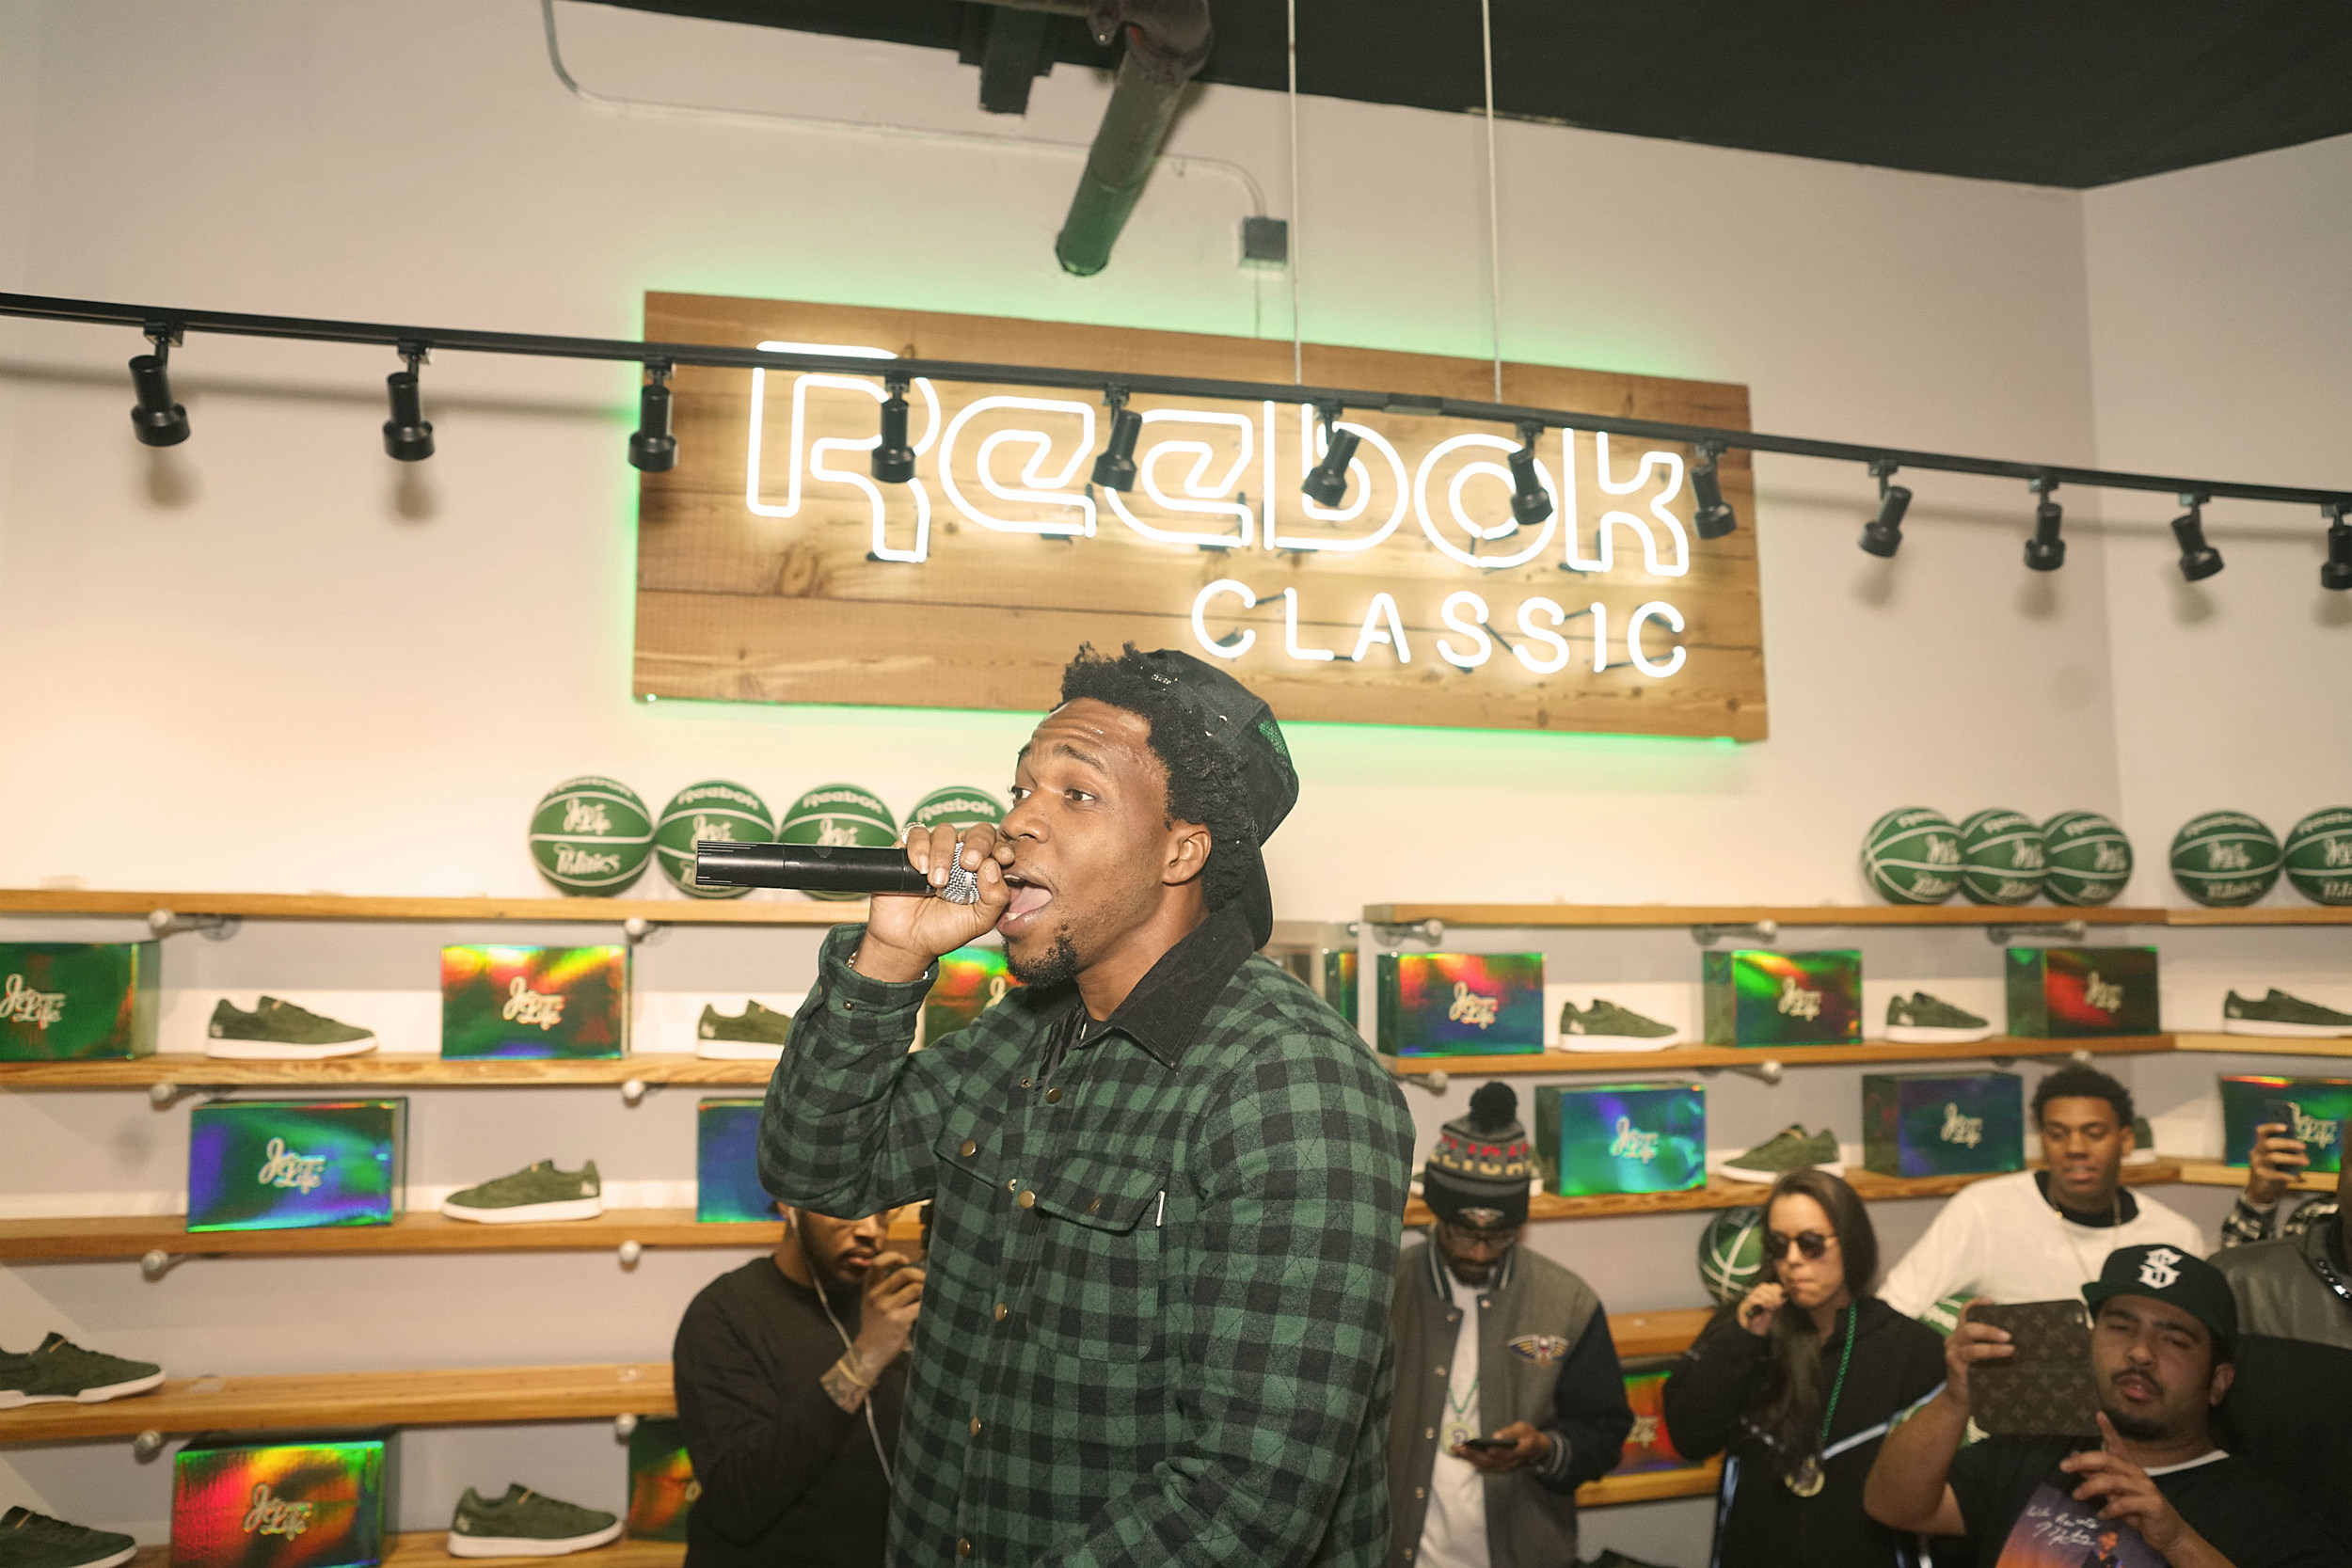 https://townsquare.media/site/812/files/2019/06/currensy-2009-freshman.jpg